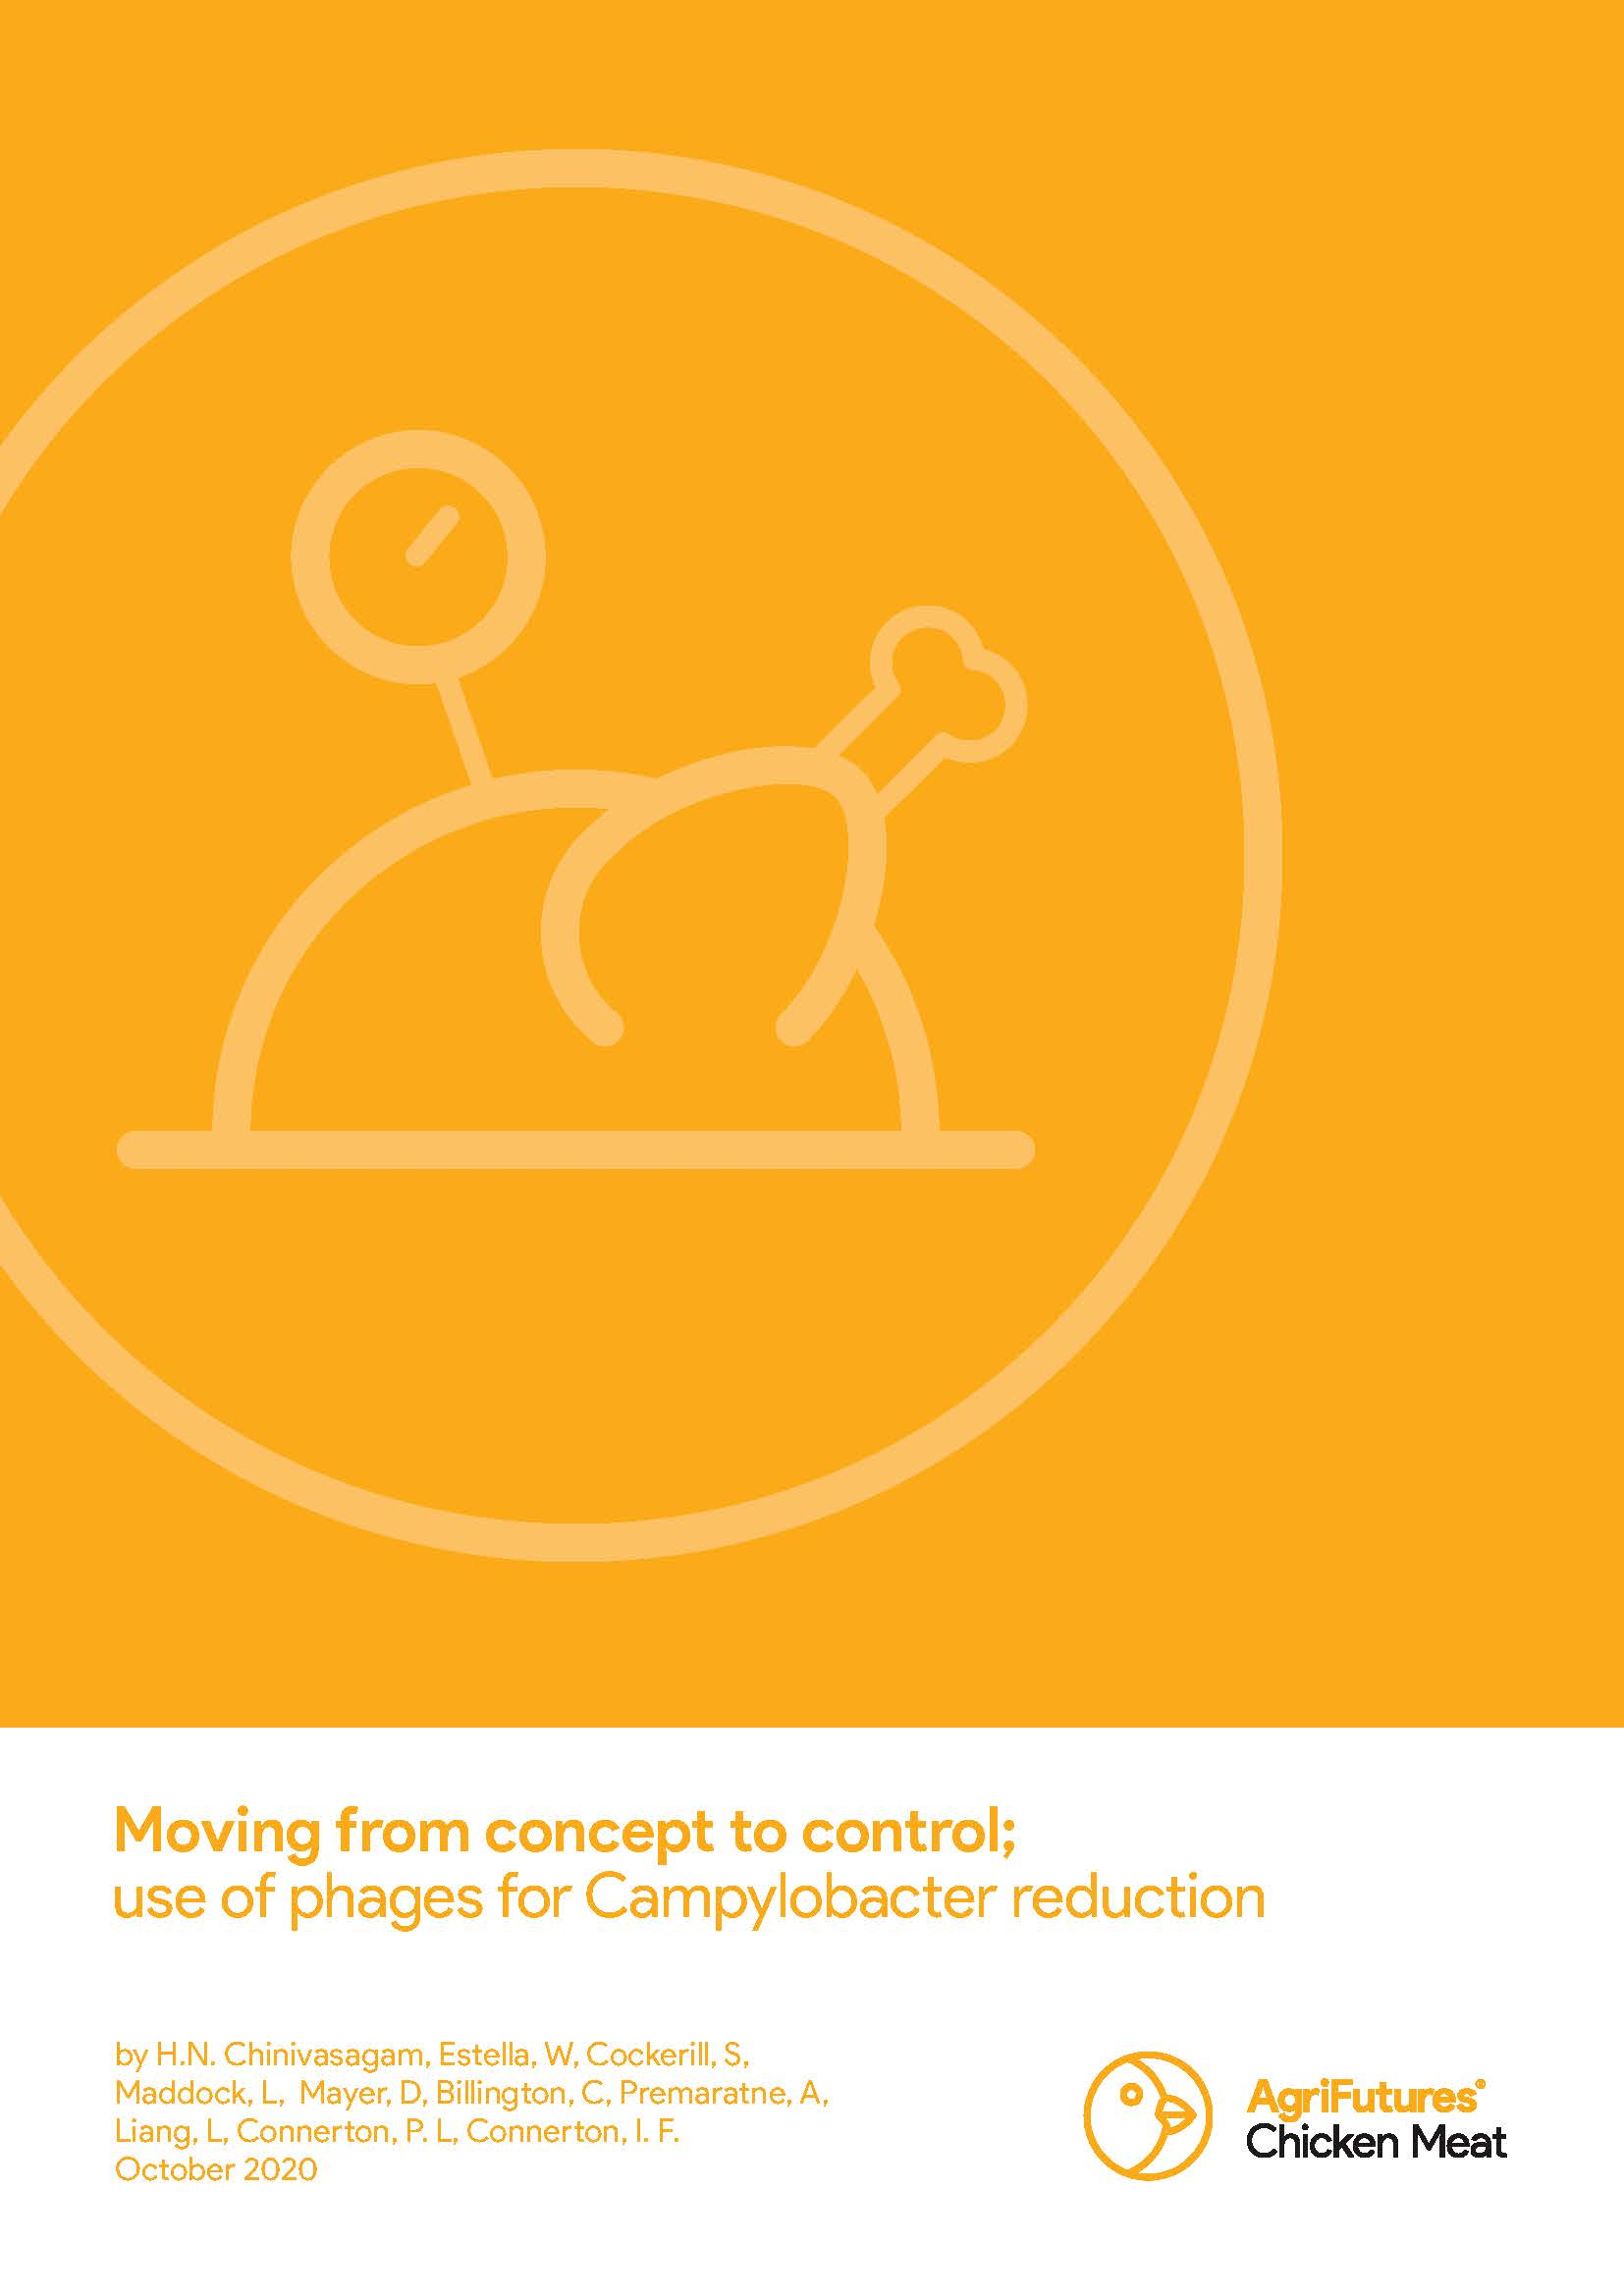 Moving from concept to control; use of phages for Campylobacter reduction - image